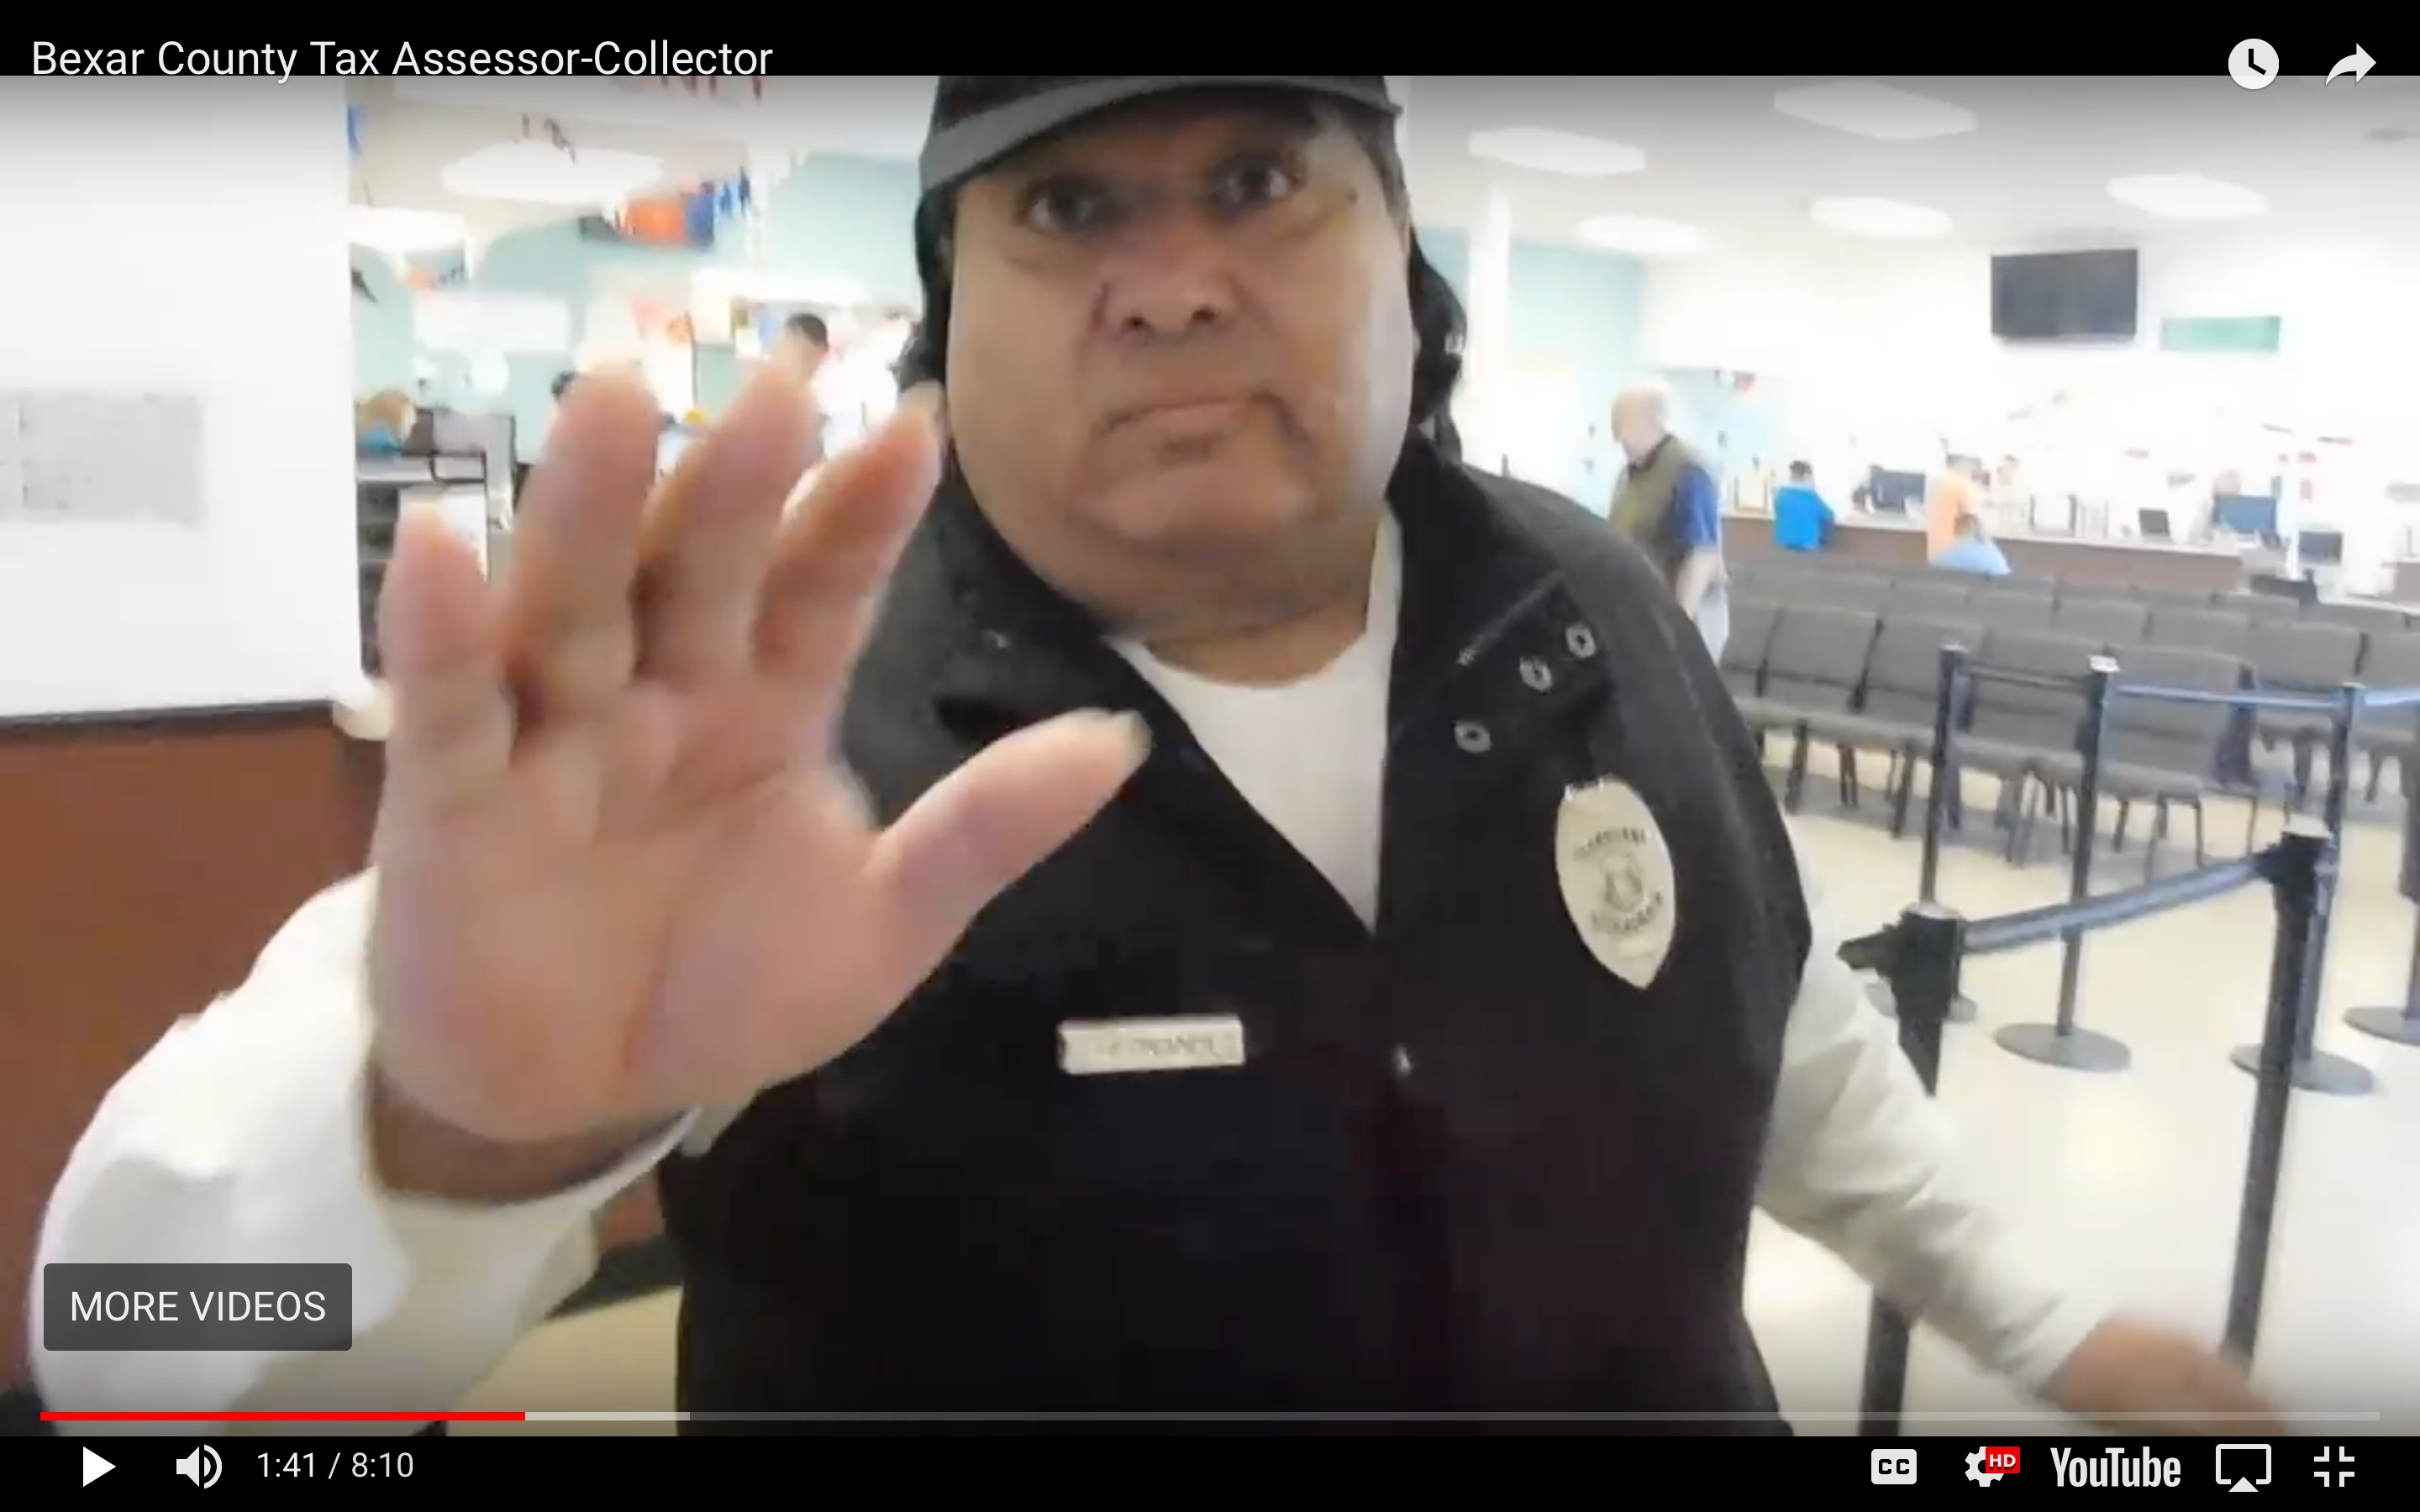 Texas Cops Arrest Man For Video Recording Tax Assessor's